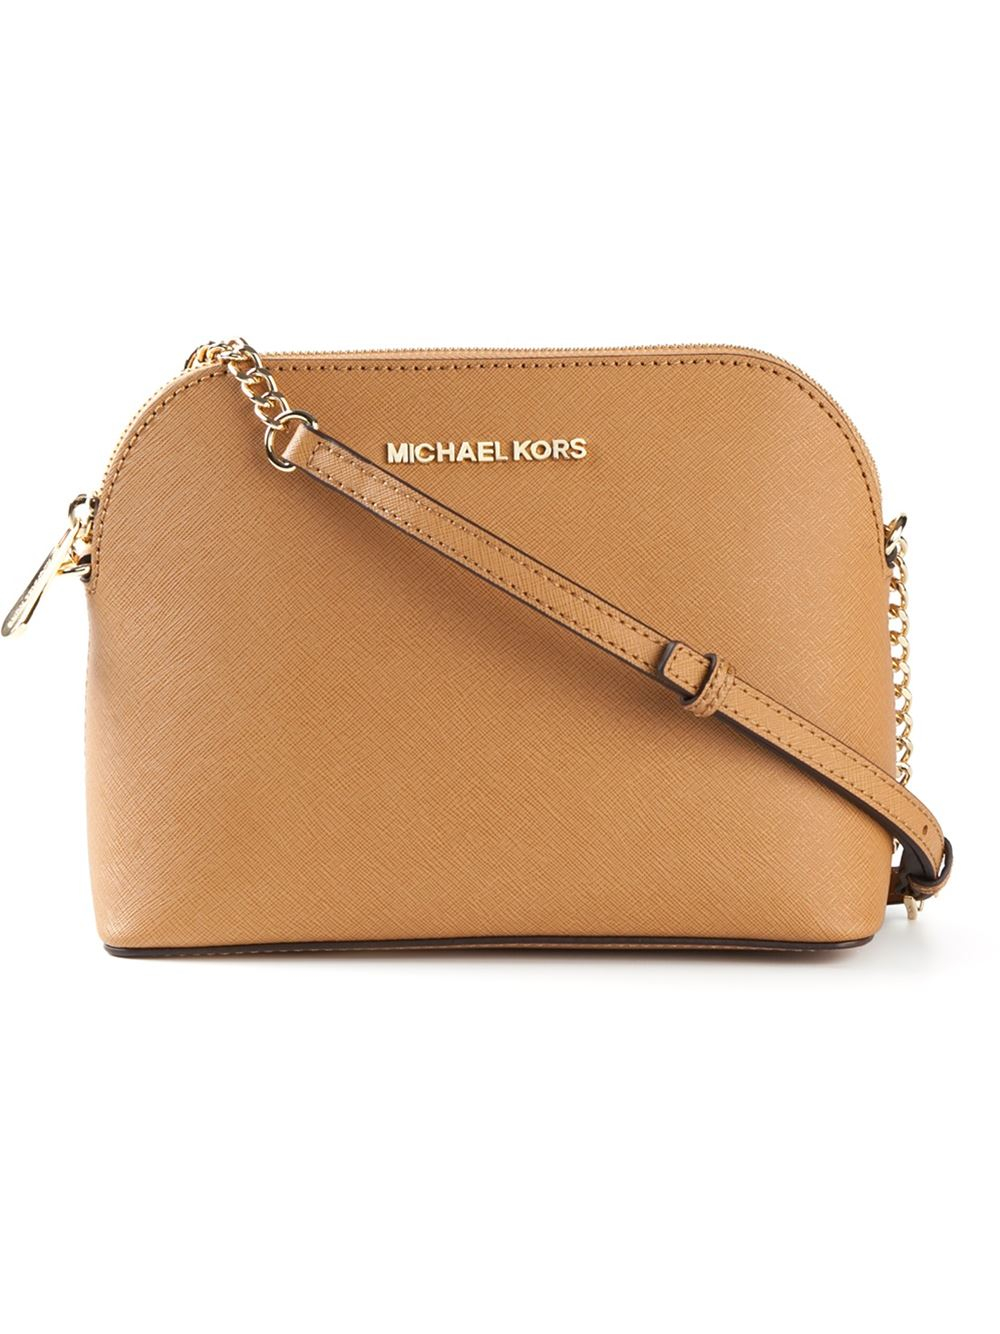 94f70027e571 Michael Kors Cindy Large Cross-Body Bag in Brown - Lyst